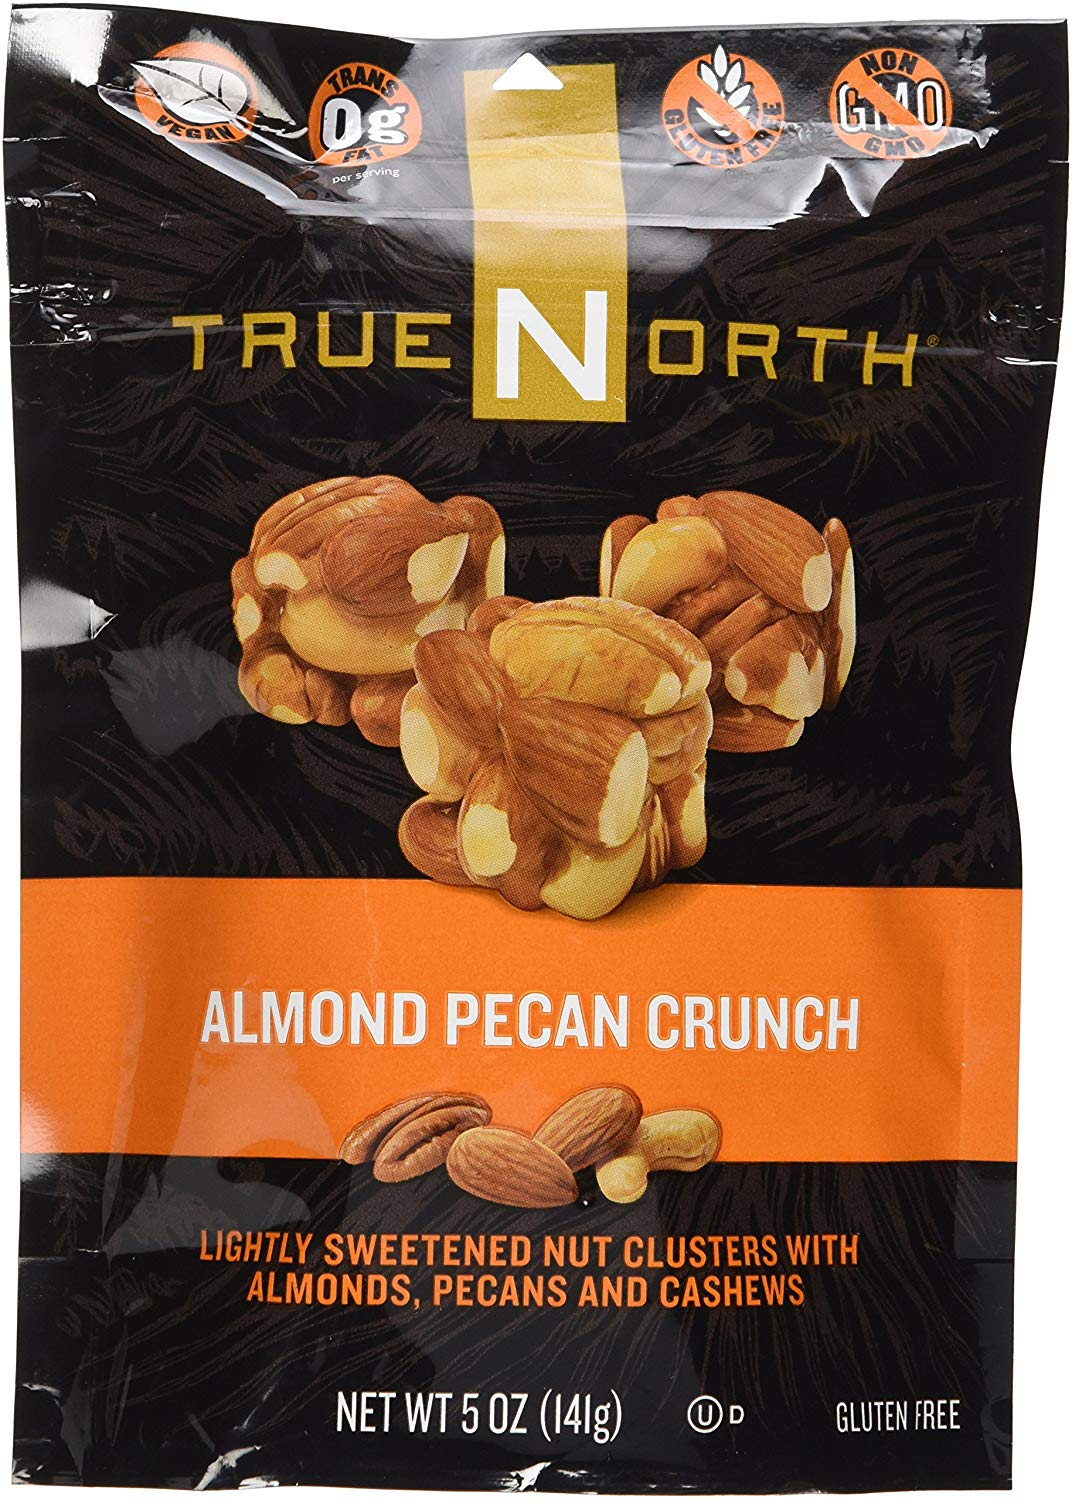 6 PACKS : TRUE NORTH CHOC NUT CRUNCH ALMND PCA, 5 OZ